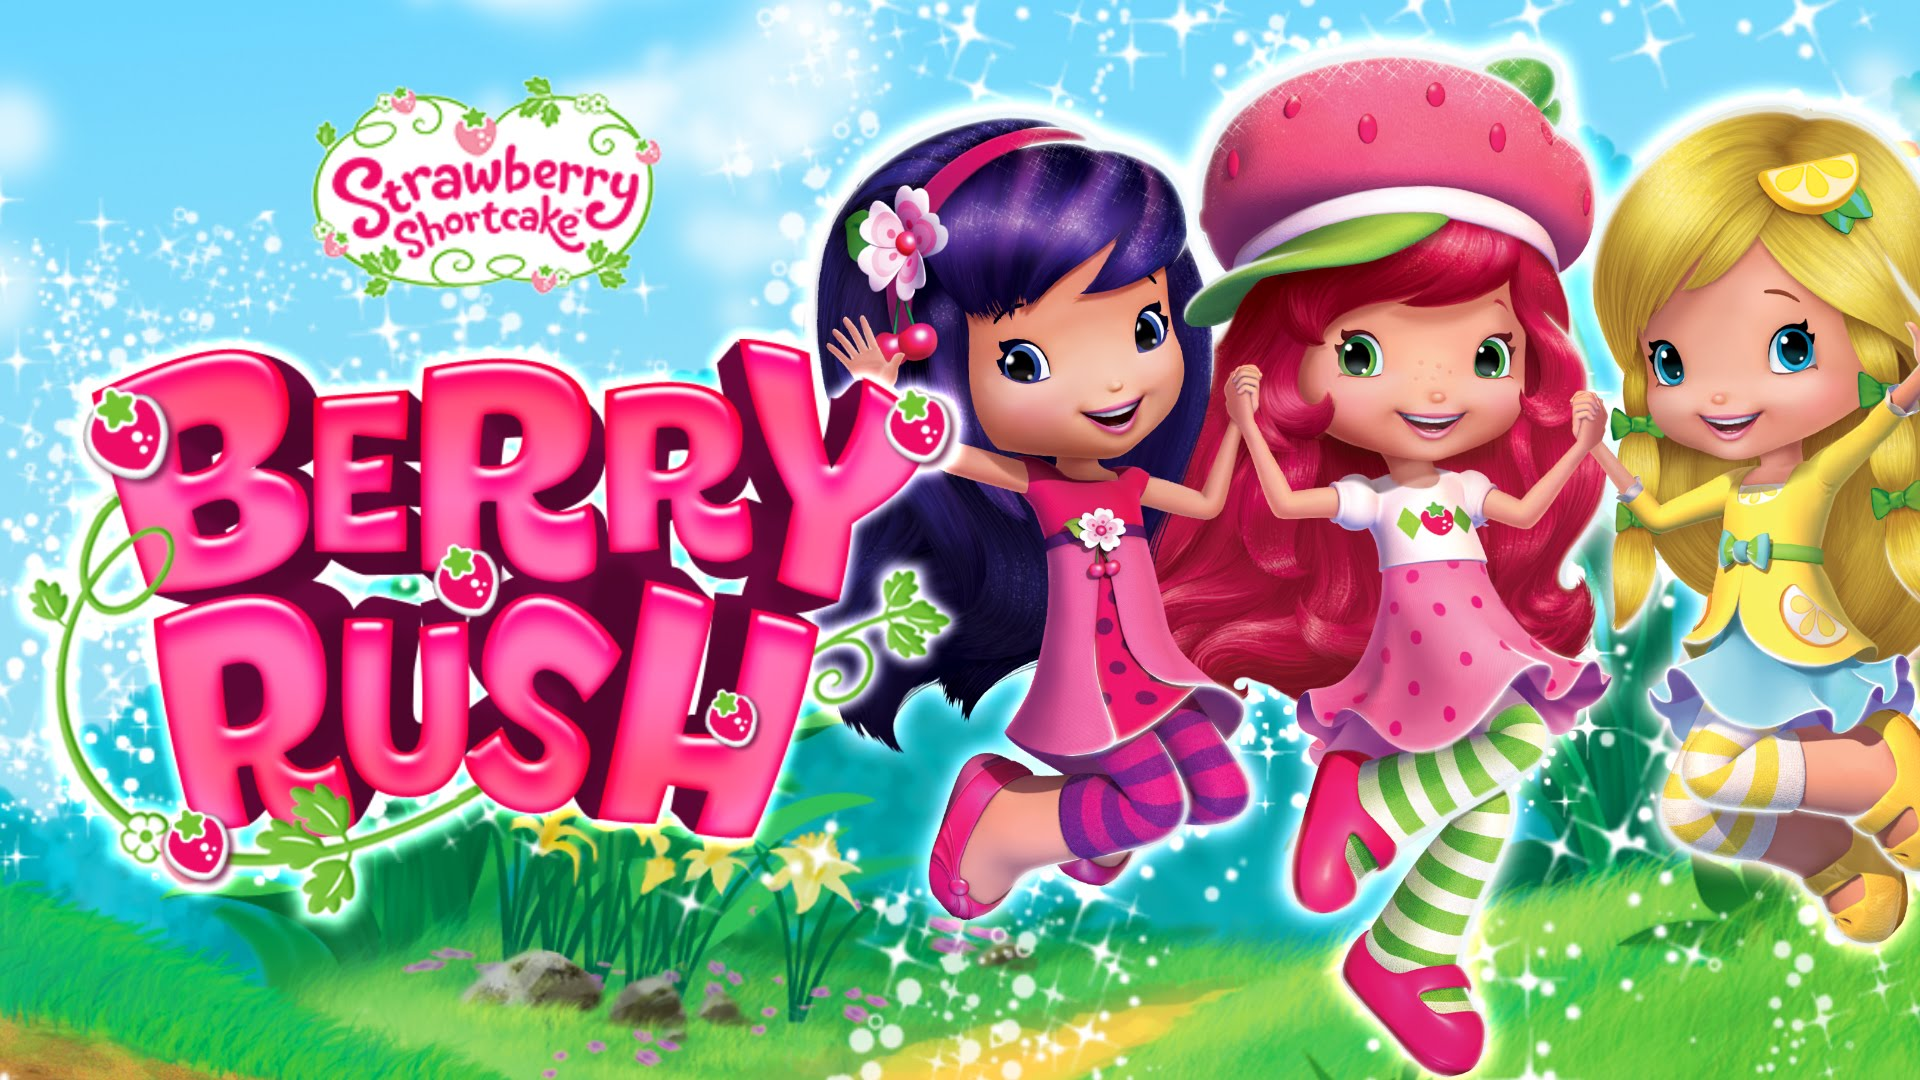 Strawberry Shortcake Berry Rush - NEW App! - Duration: 48 seconds.